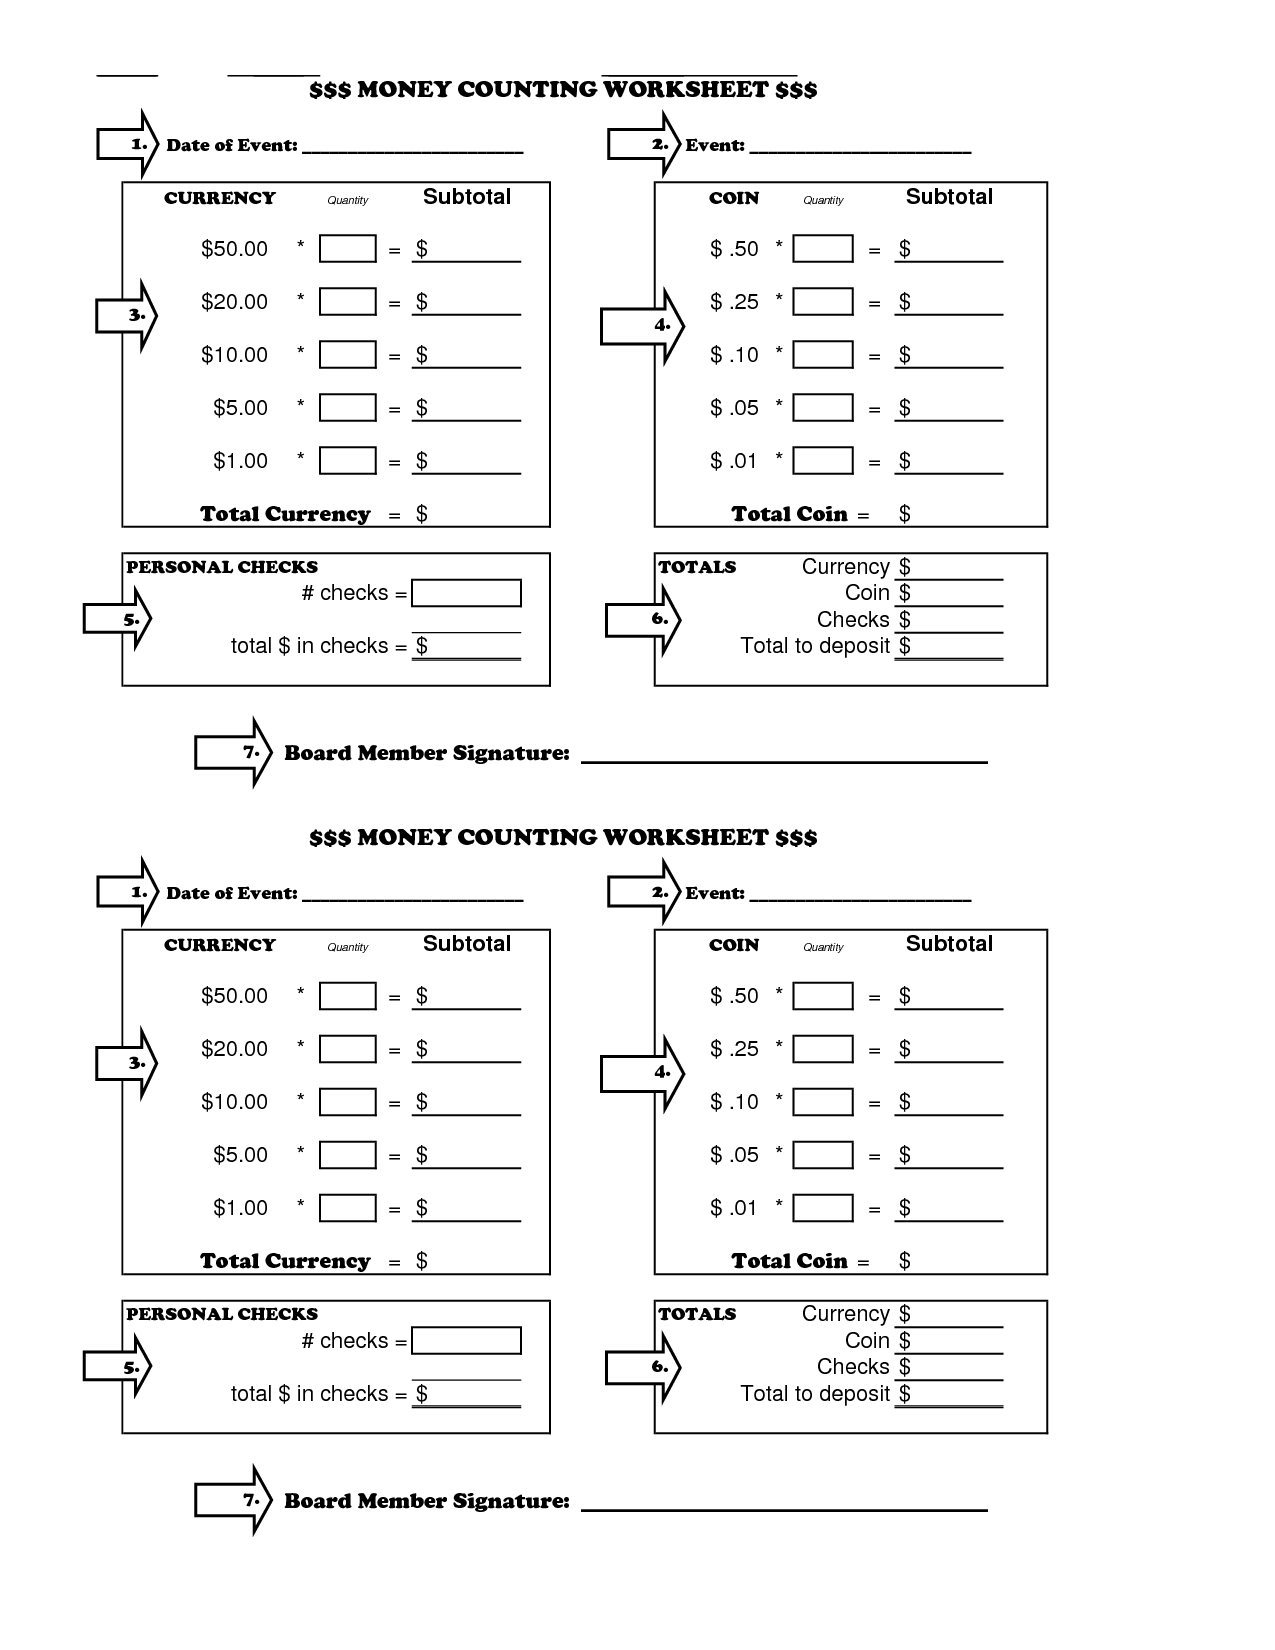 Cash Drawer Worksheets Printable